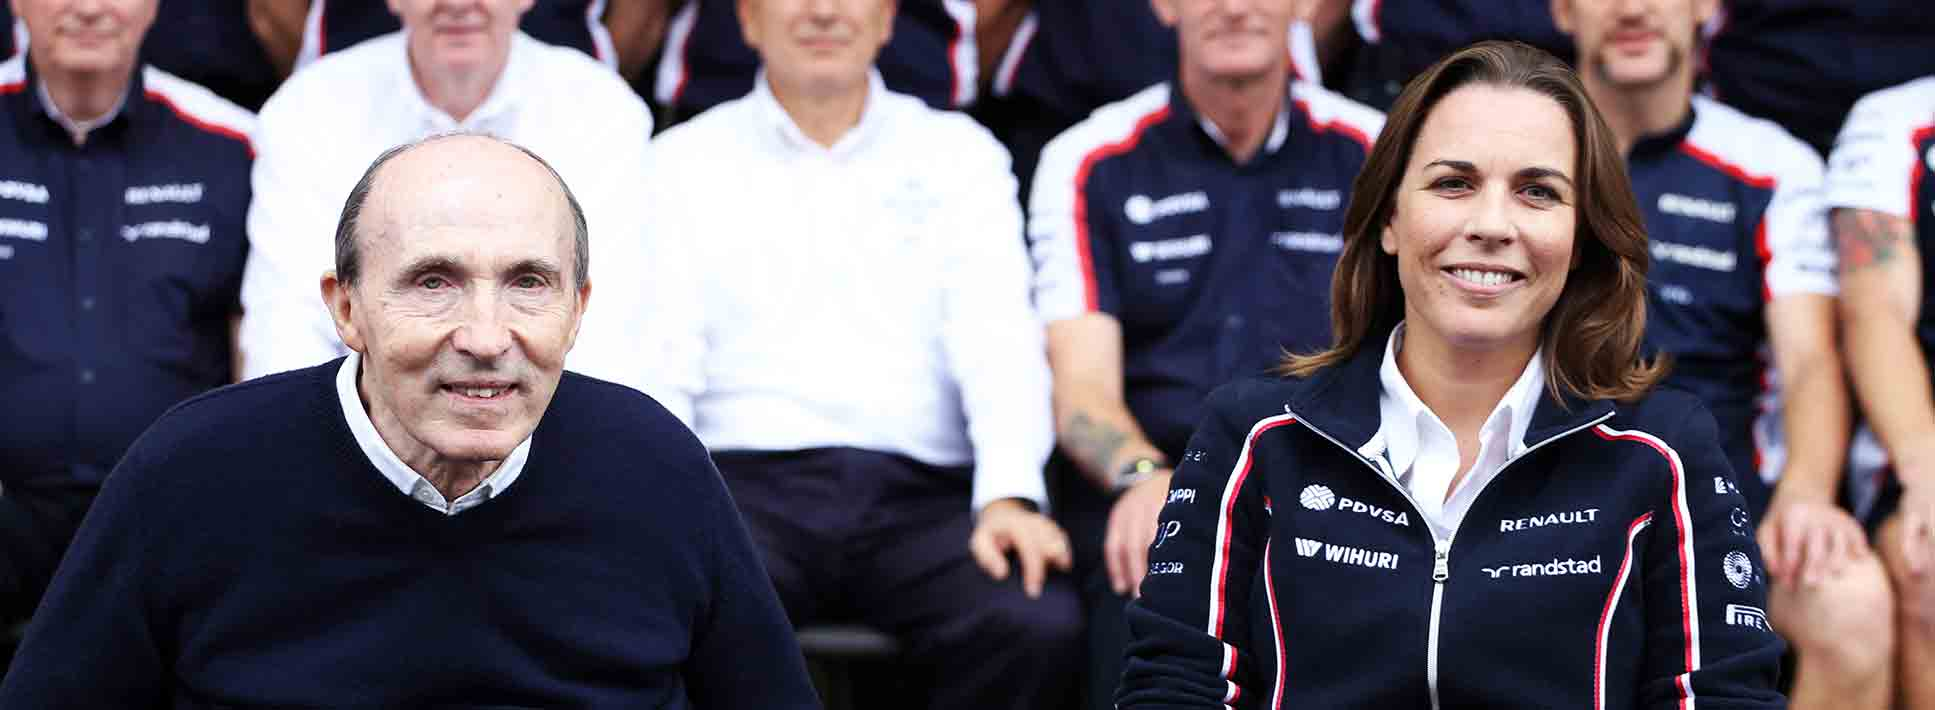 Williams Racing Opens New Chapter as Family Step Aside